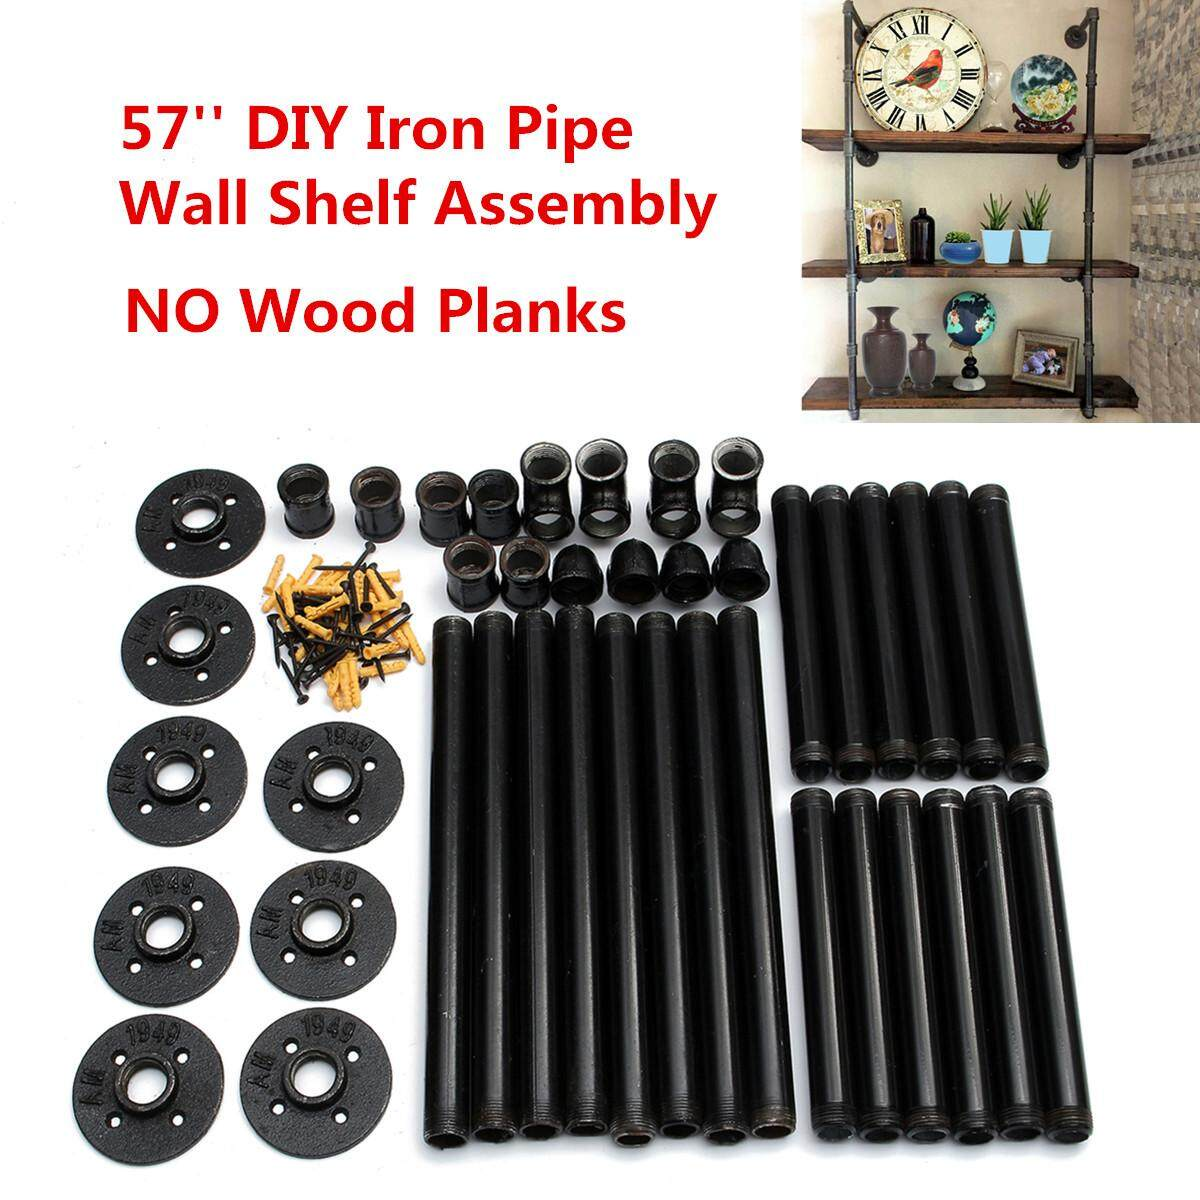 Industrial Retro Design Black Iron Pipe Wall Mount Shelf Shelving 145cm Height